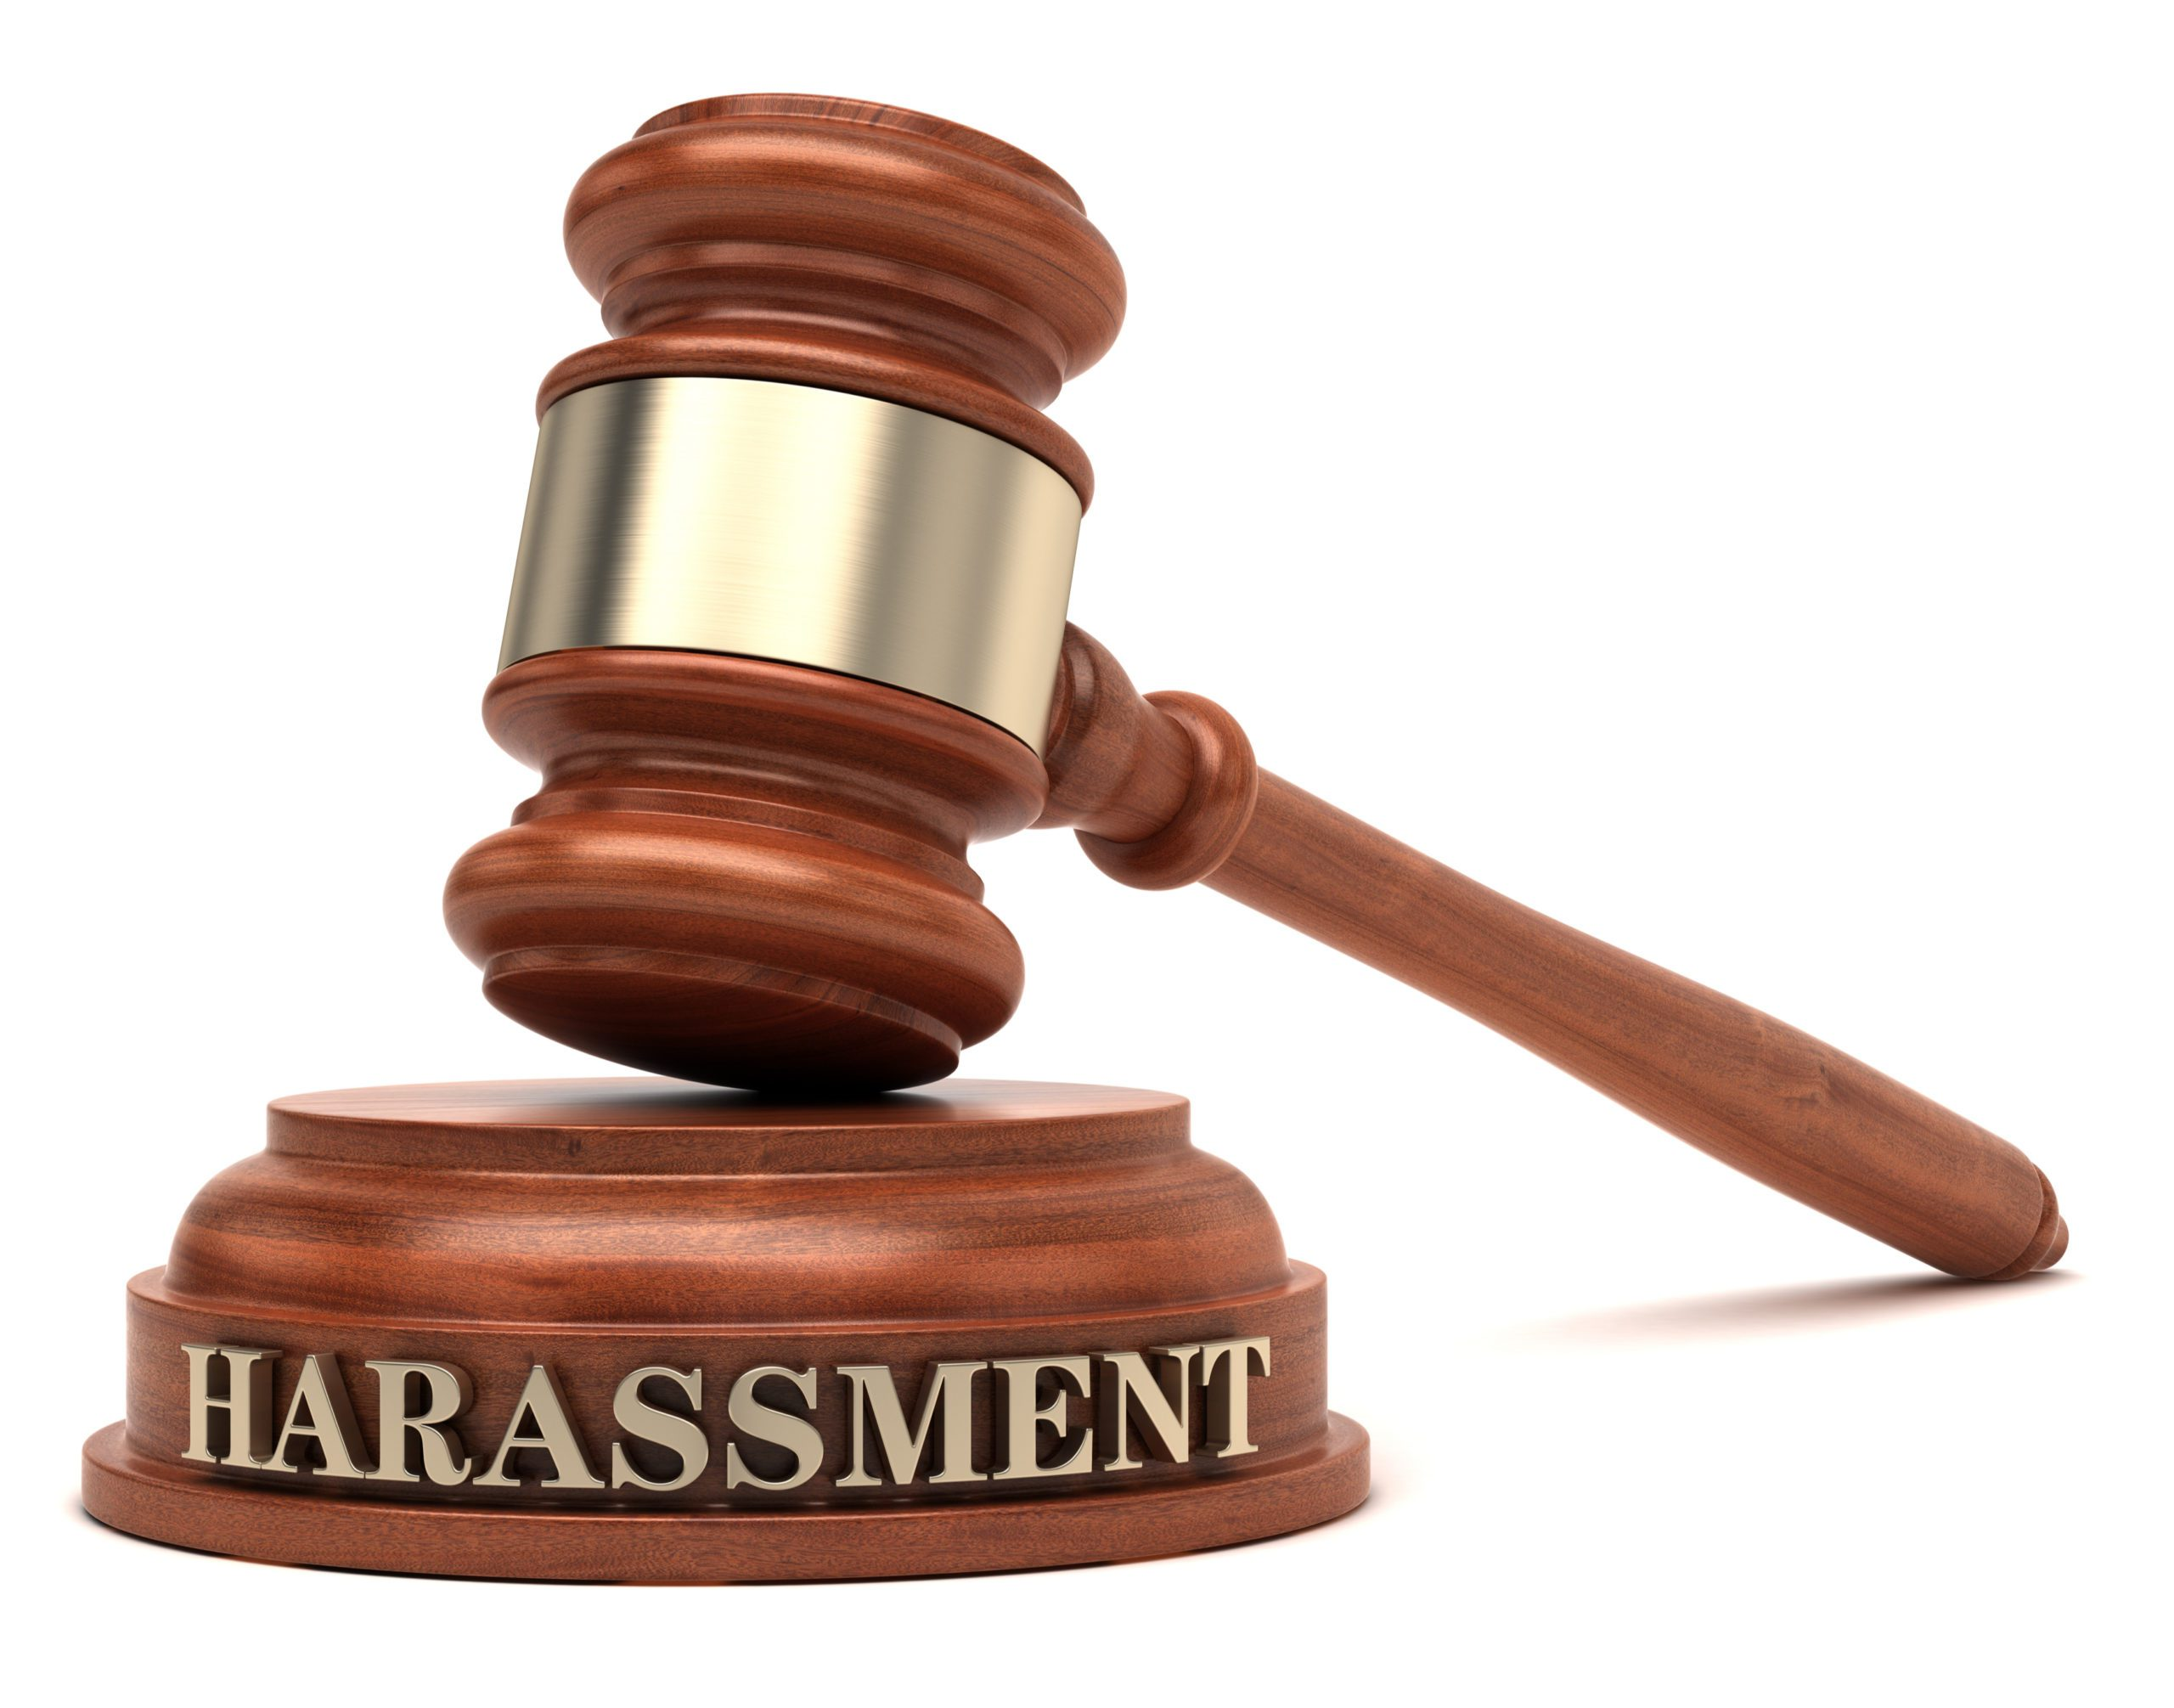 Common Types of Tenant Harassment